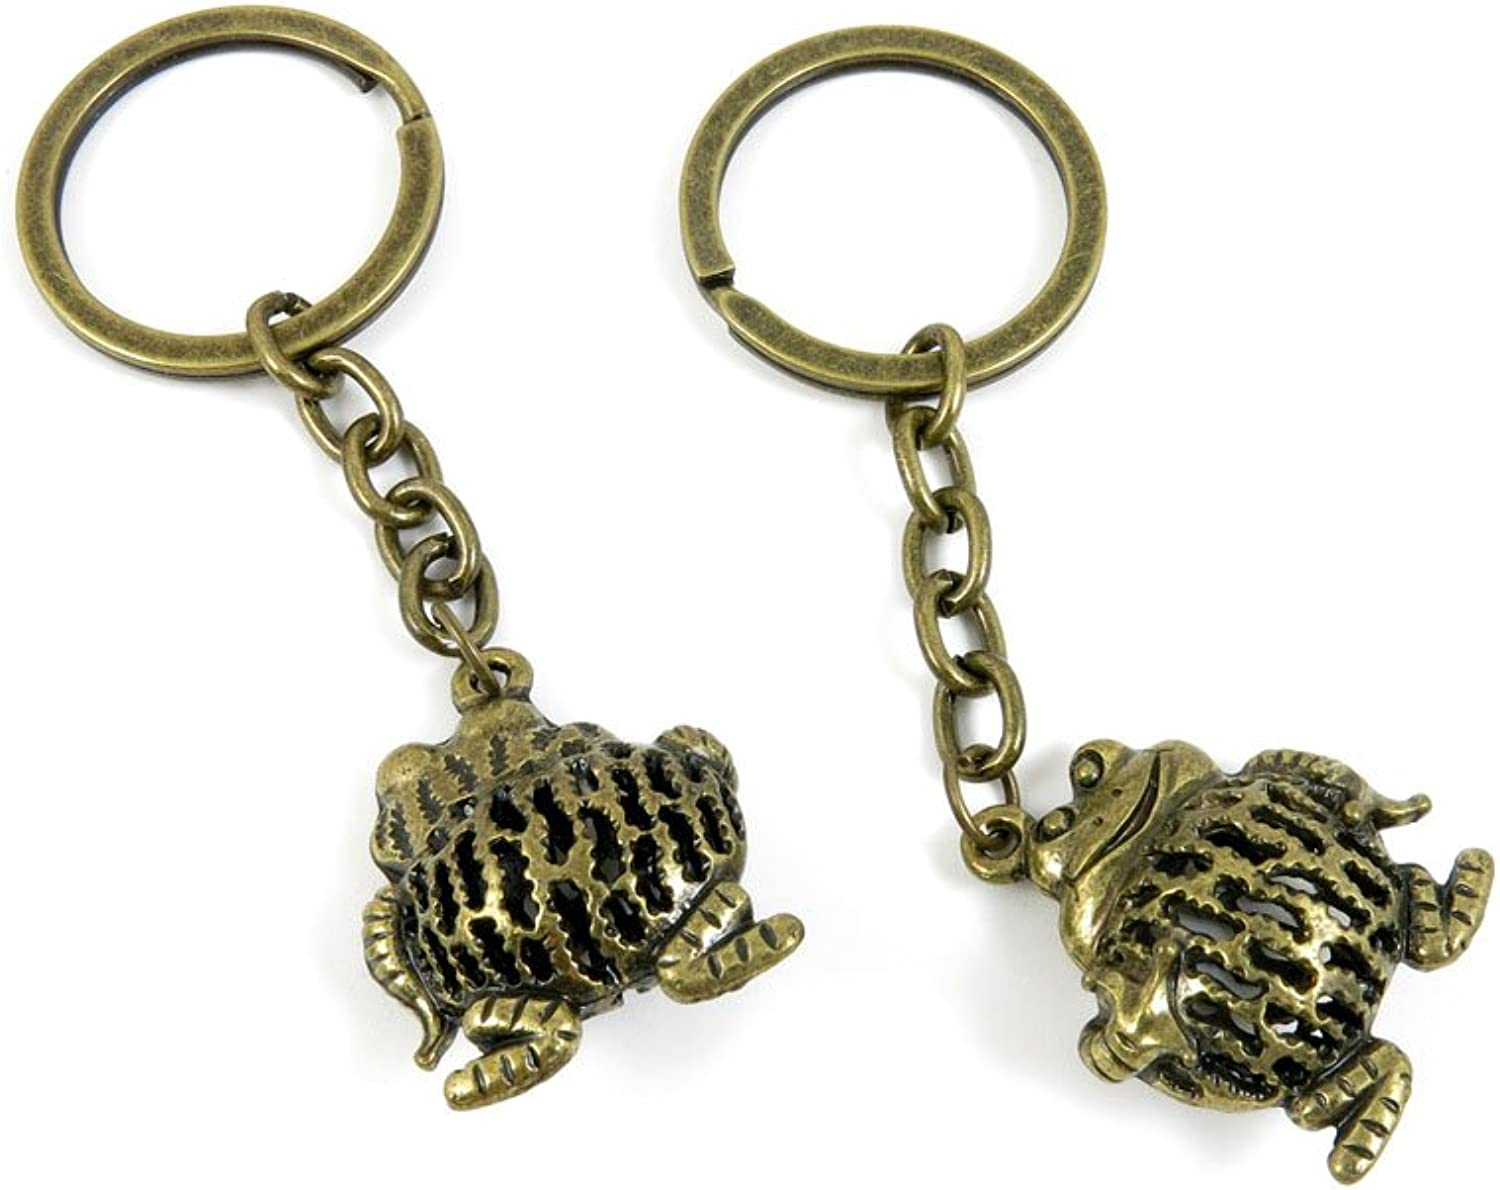 100 PCS Keyrings Keychains Key Ring Chains Tags Jewelry Findings Clasps Buckles Supplies S2GS7 Hollow Frog Prince